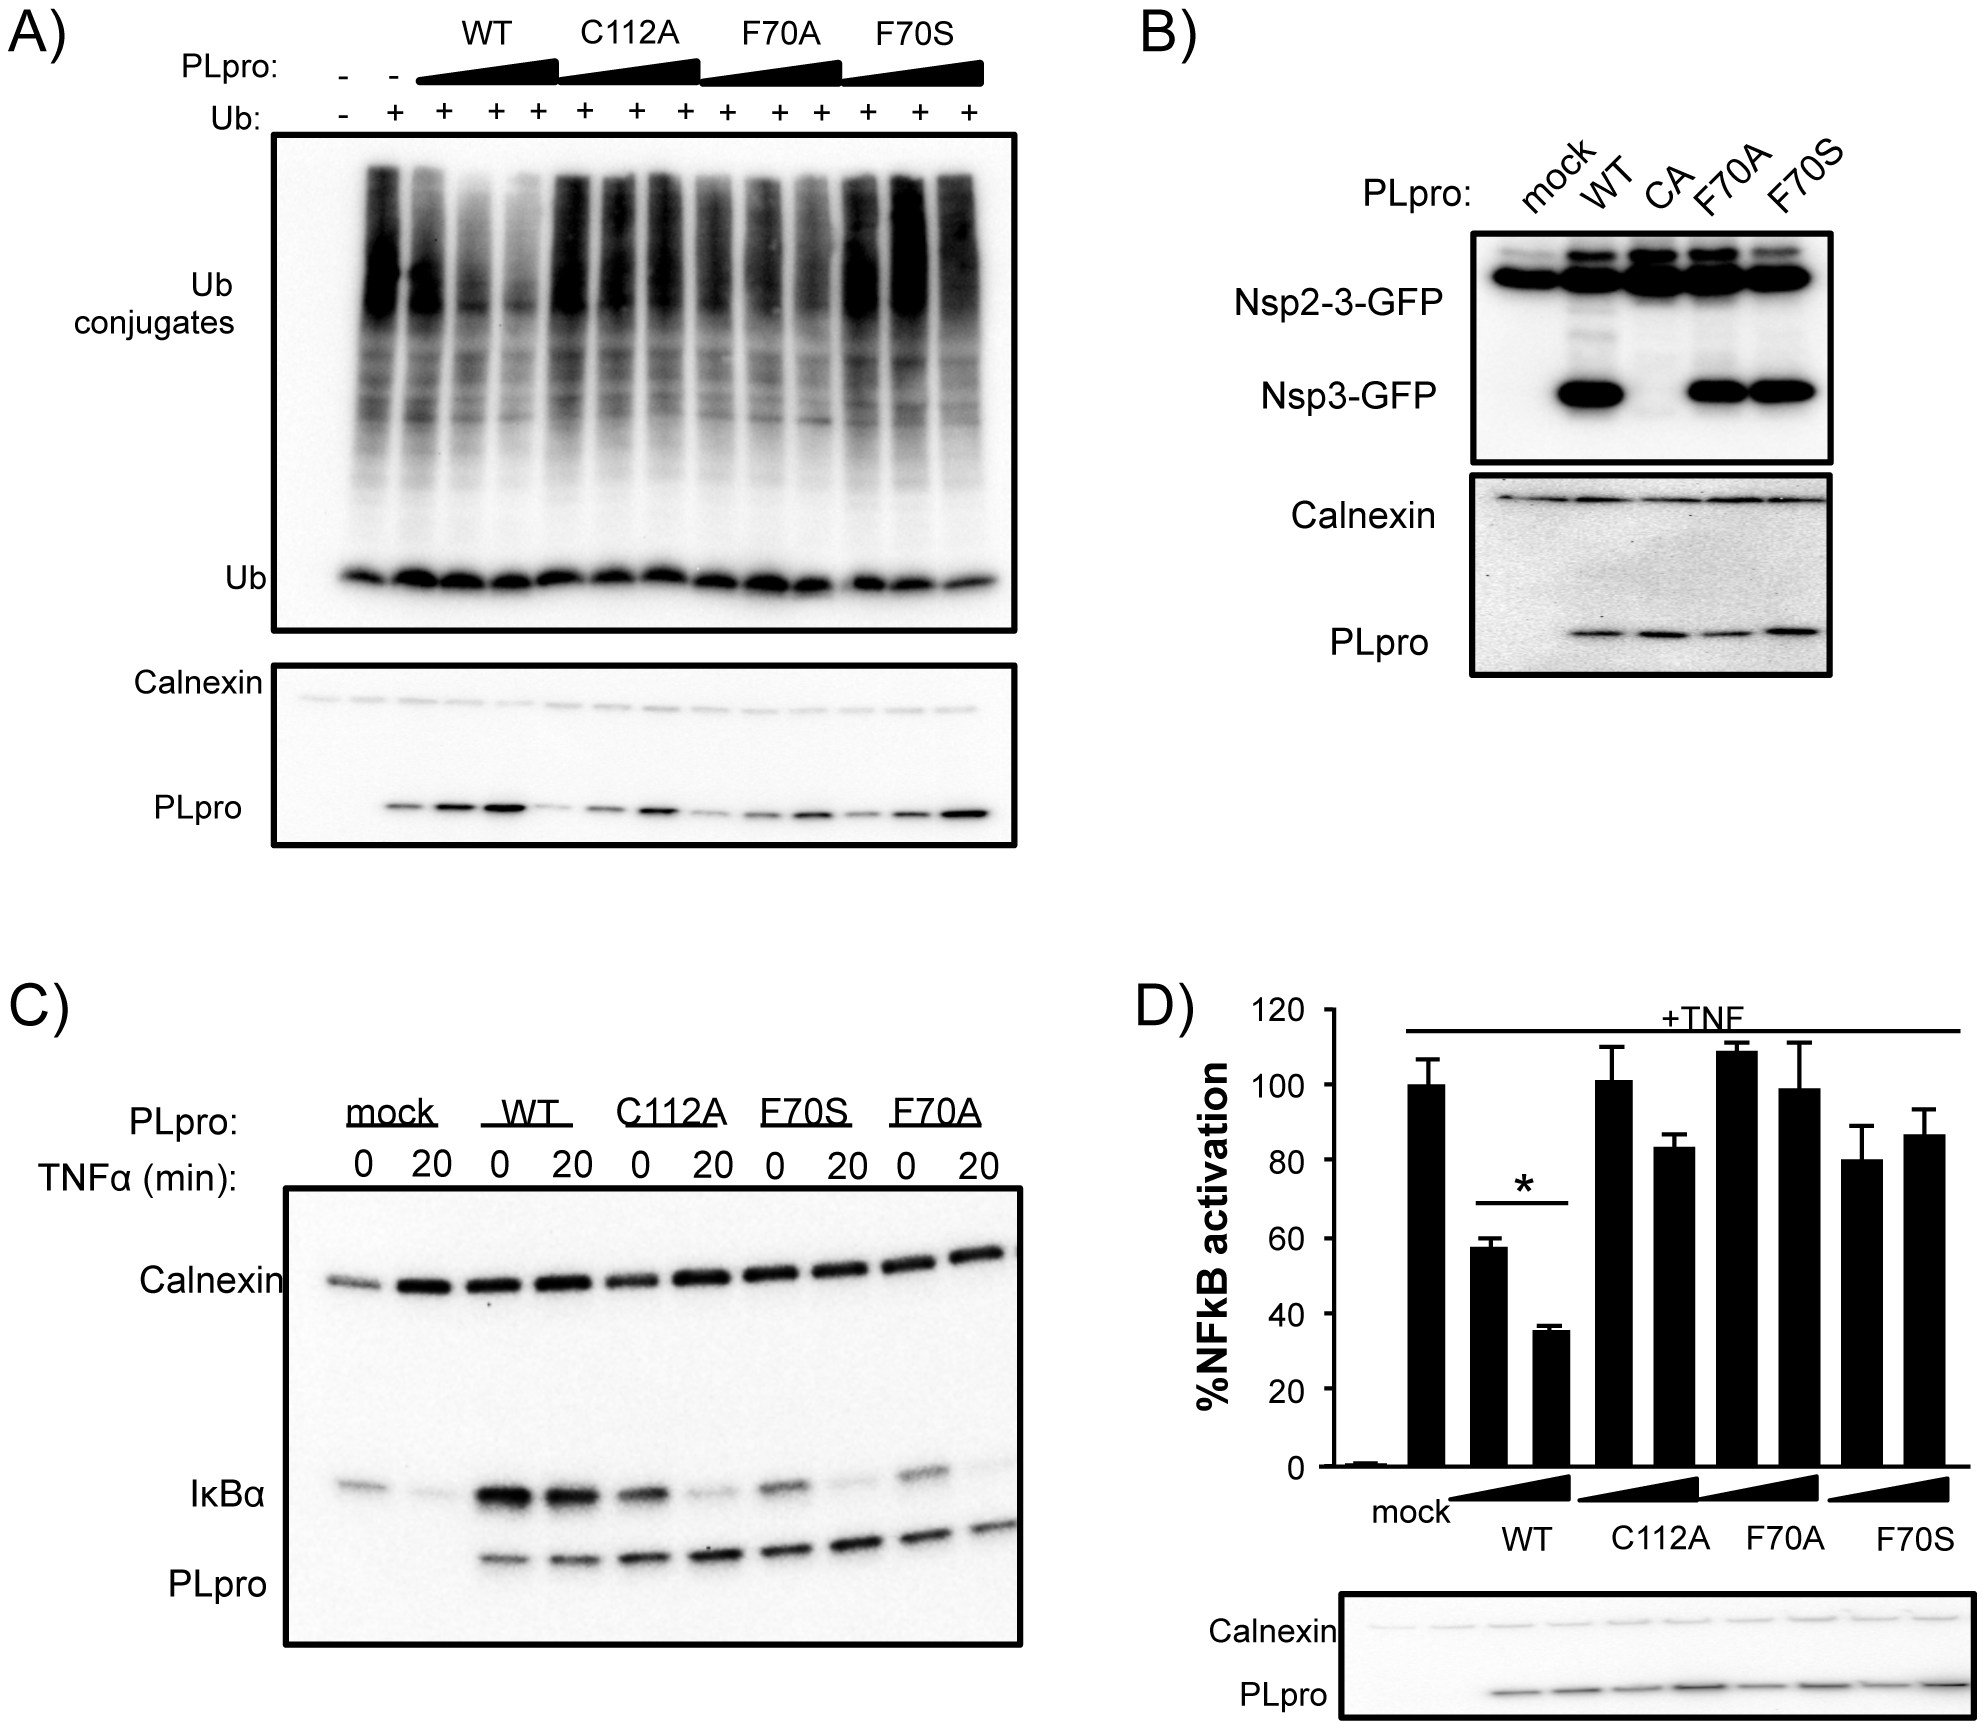 Deubiquitinating activity and NF-κB antagonism are reduced by mutation of SARS-CoV PLpro residue F70.